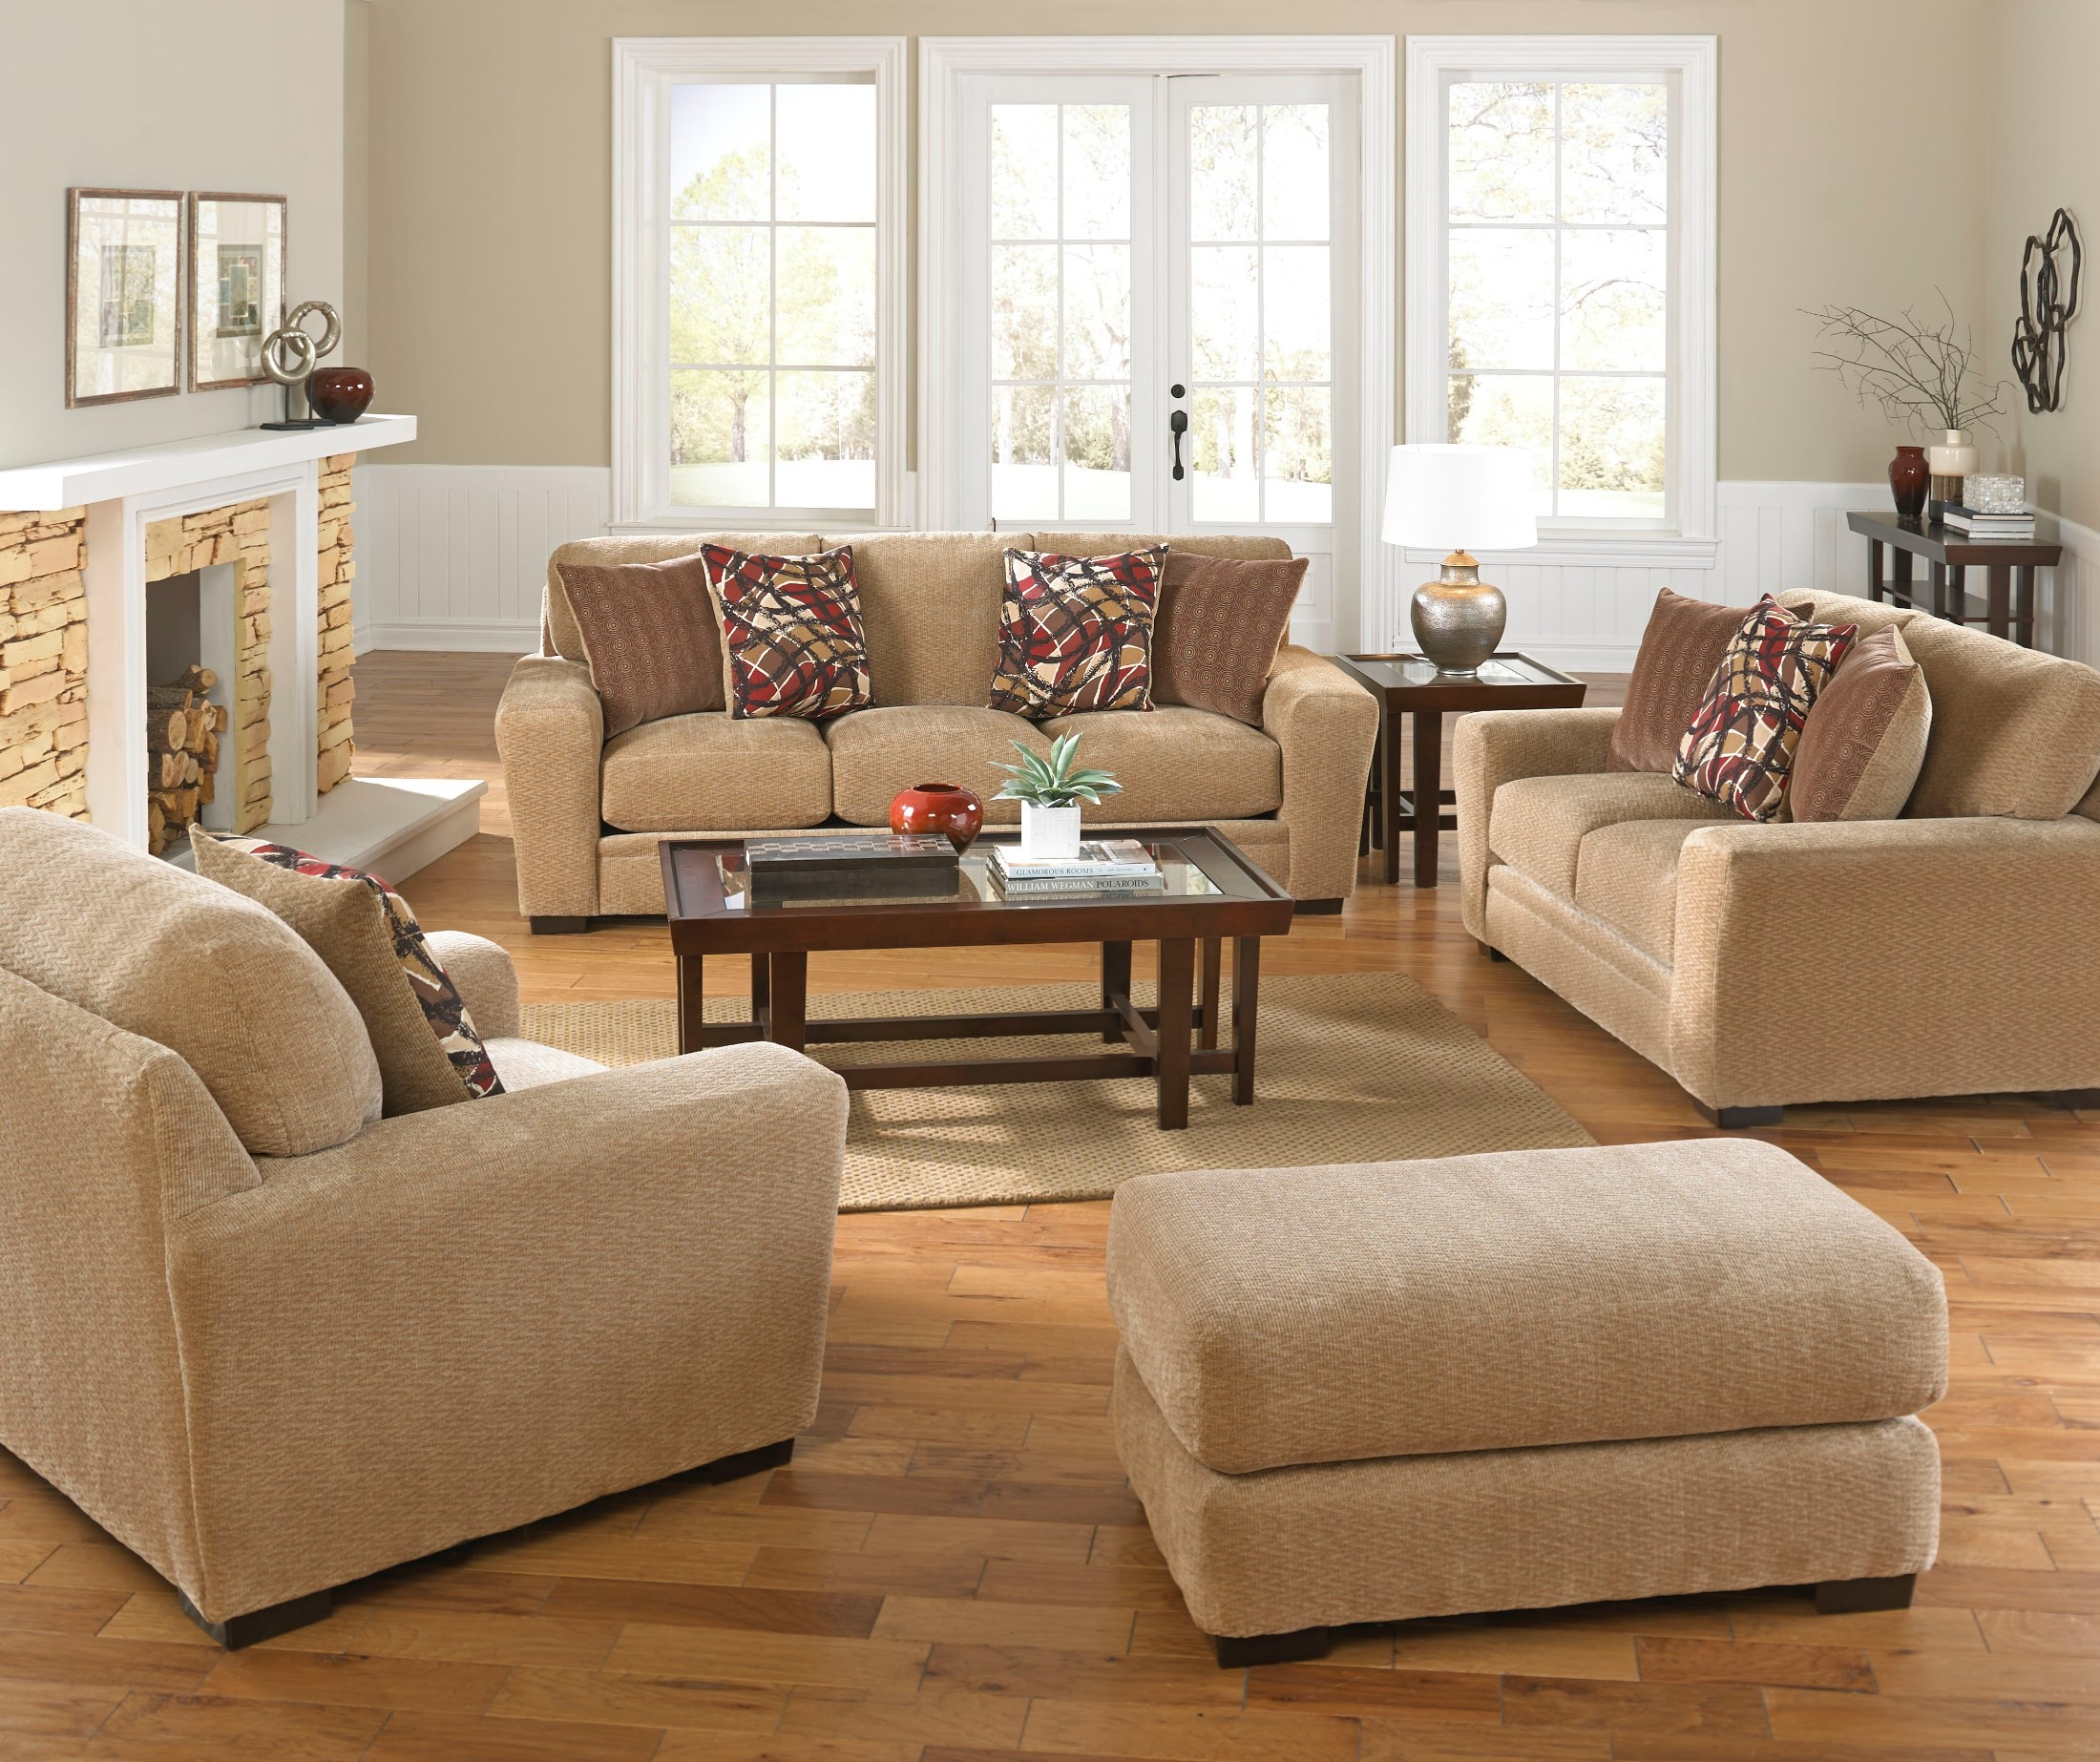 oatmeal sofa set slipcovers for sofas without removable cushions prescott and brick living room from jackson